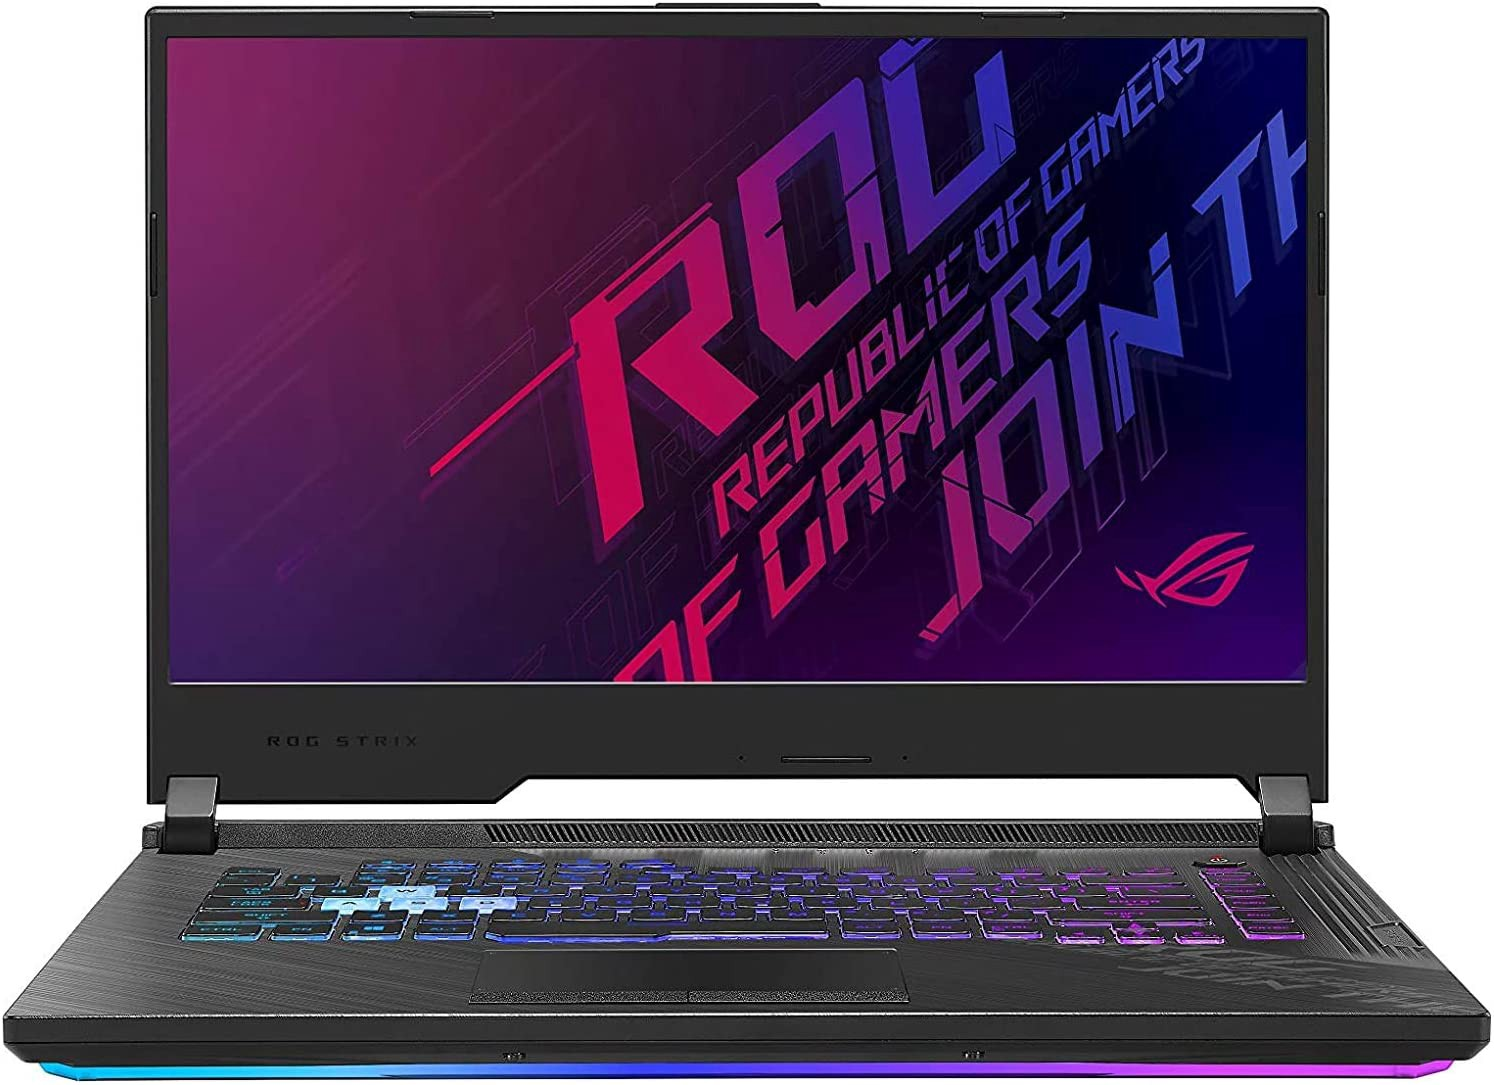 CUK Rog by ASUS performance machine learning, deep learning, data science laptop